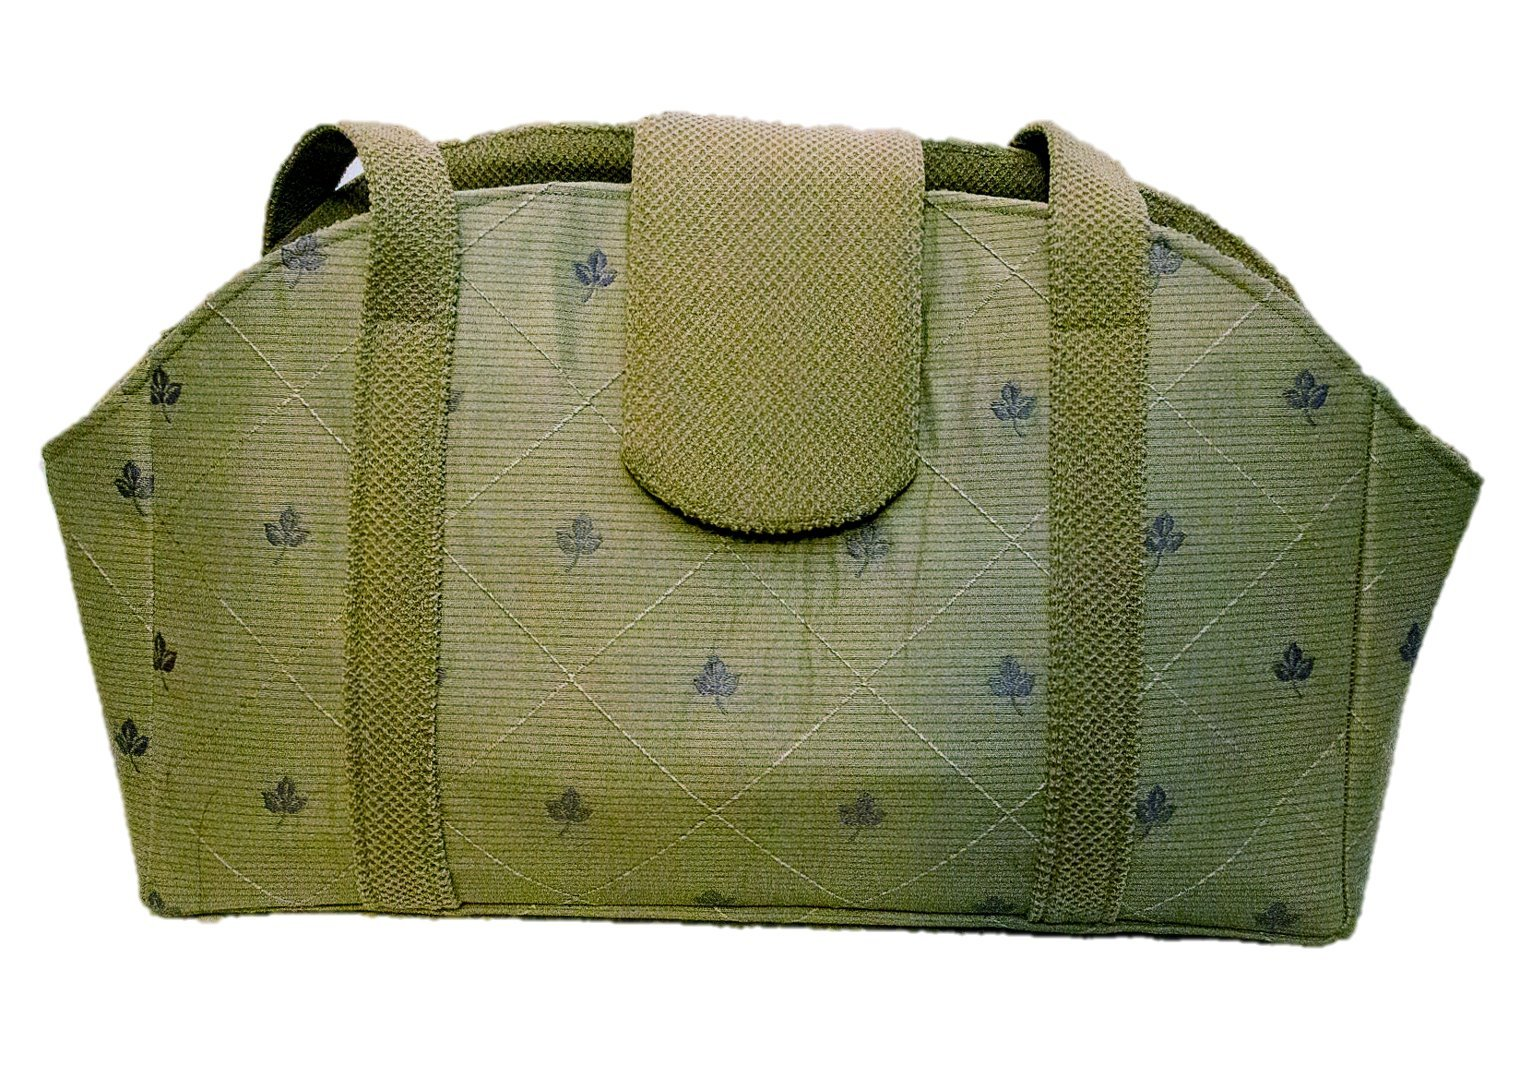 Fall Leaves and Pale Green Pet Purse Carrier by Creatures CoversTM (Image #1)